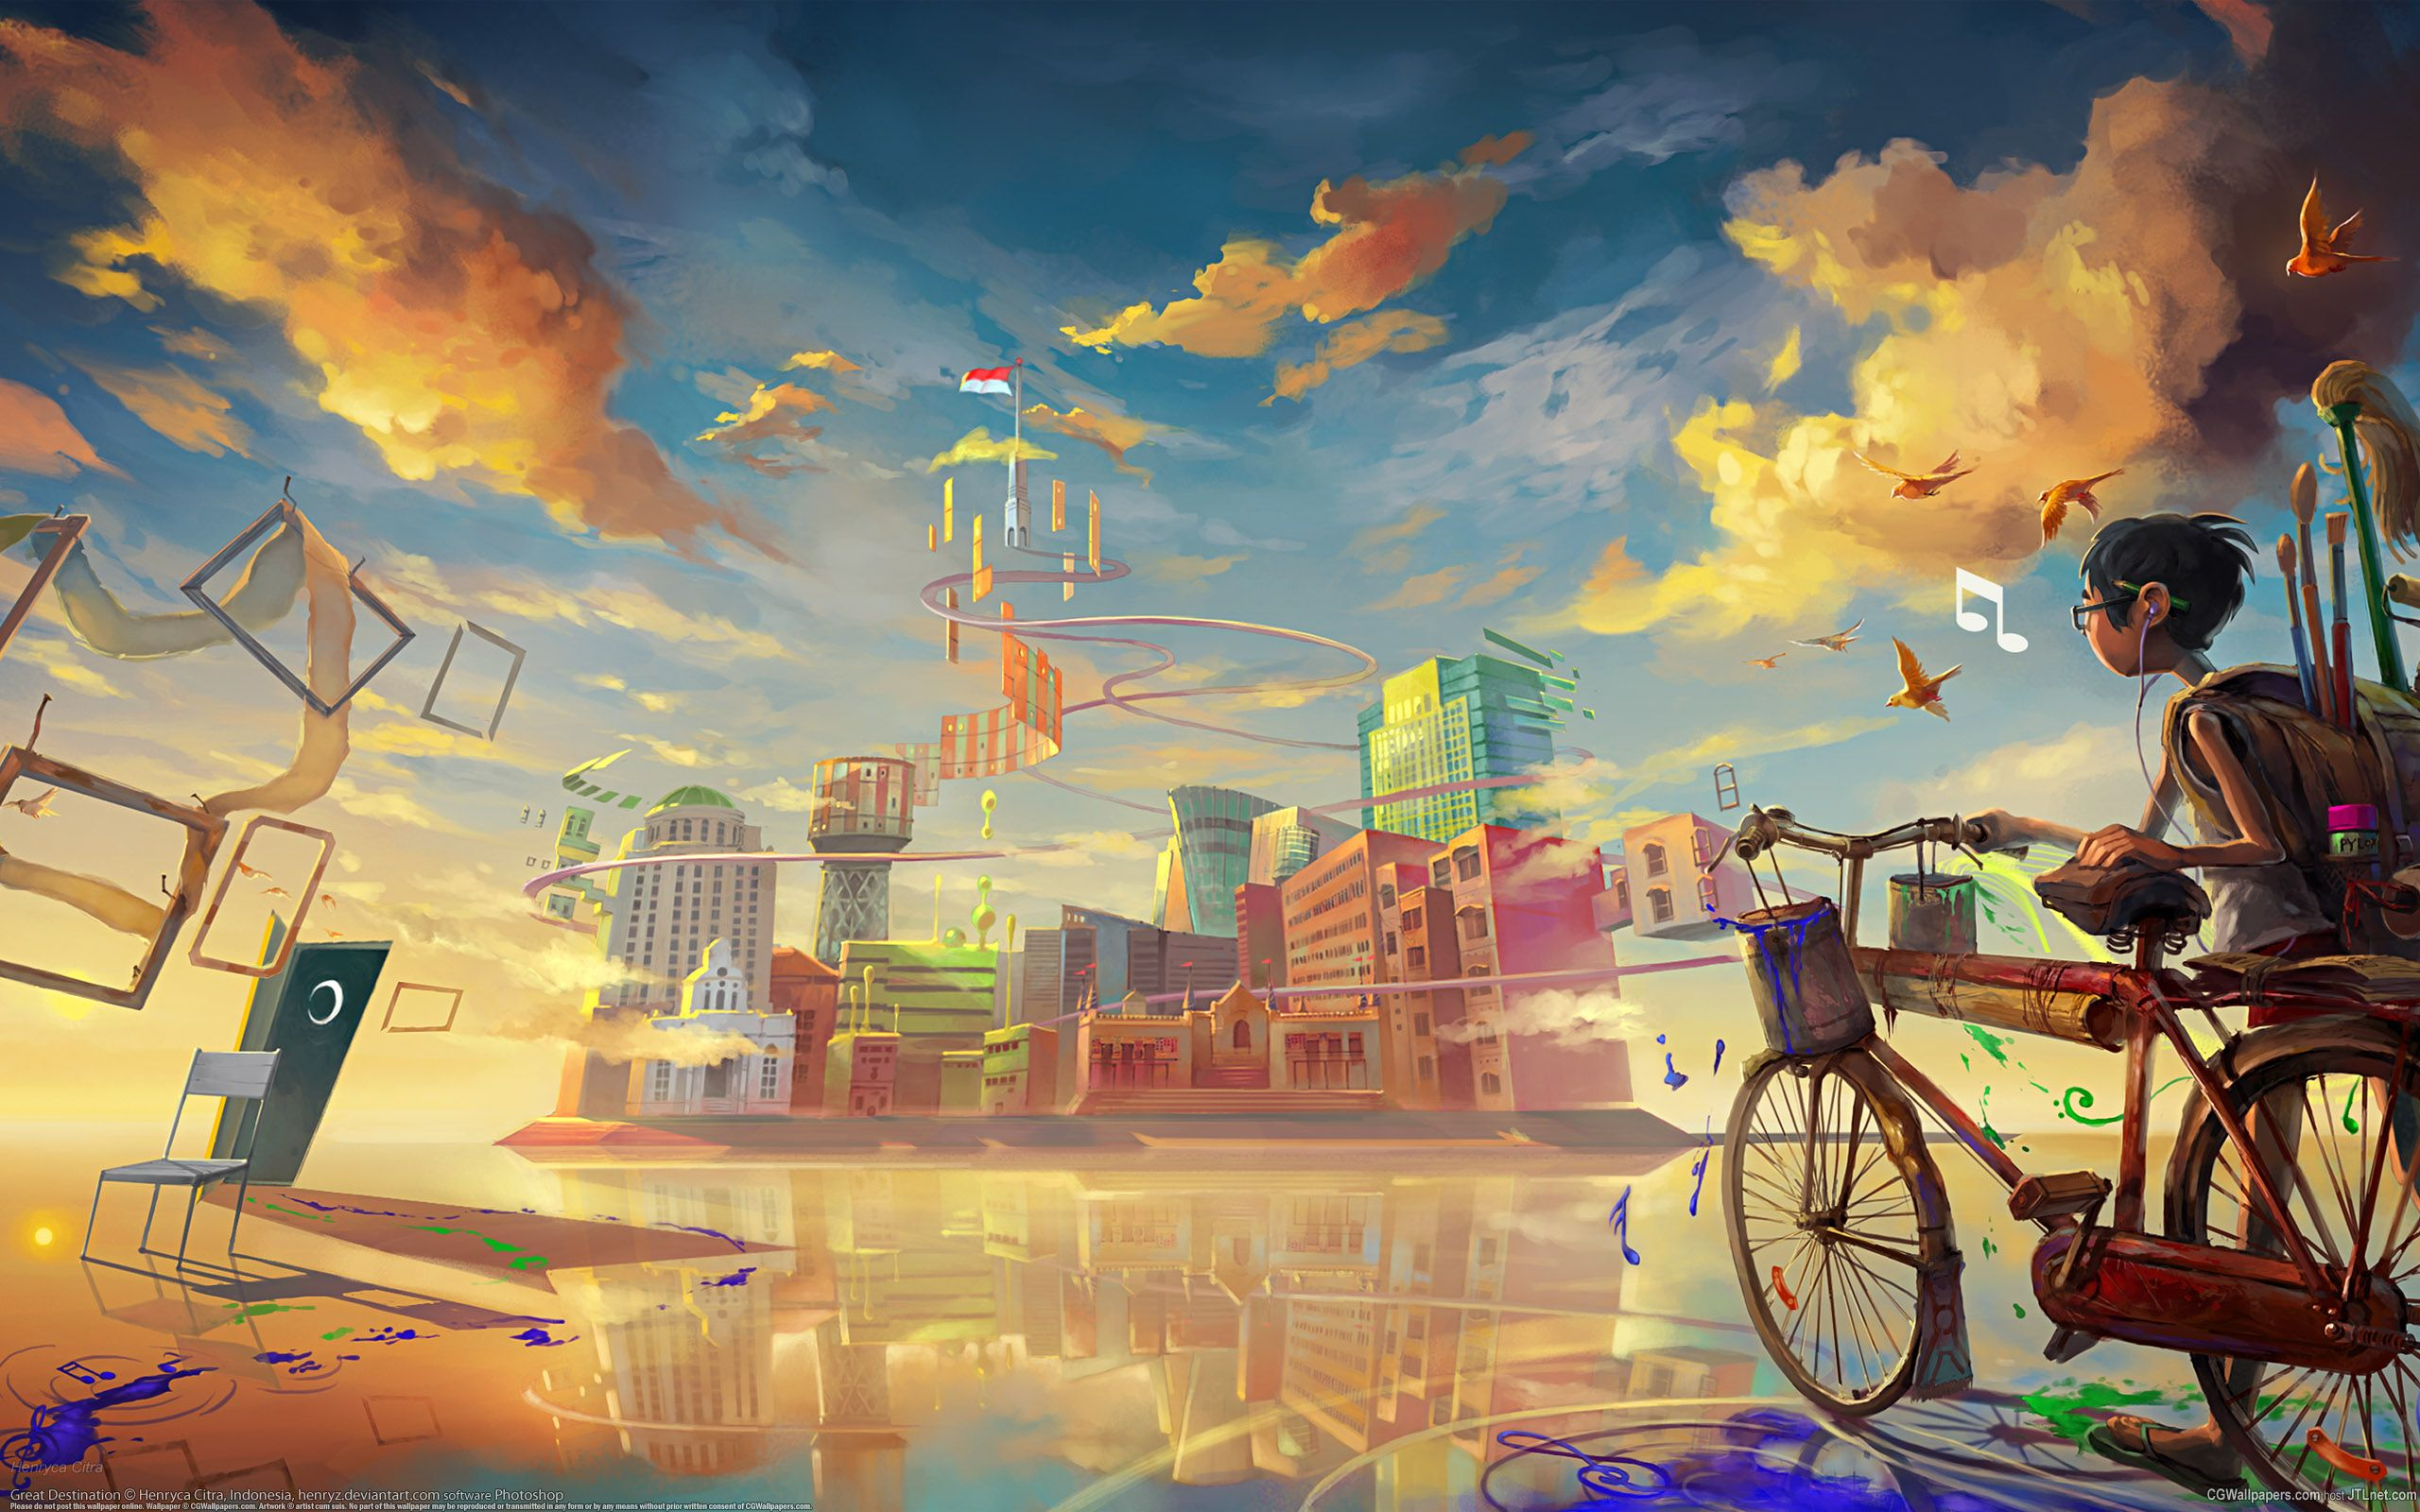 Artistic Wallpapers   Top Artistic Backgrounds   WallpaperAccess 2560x1600